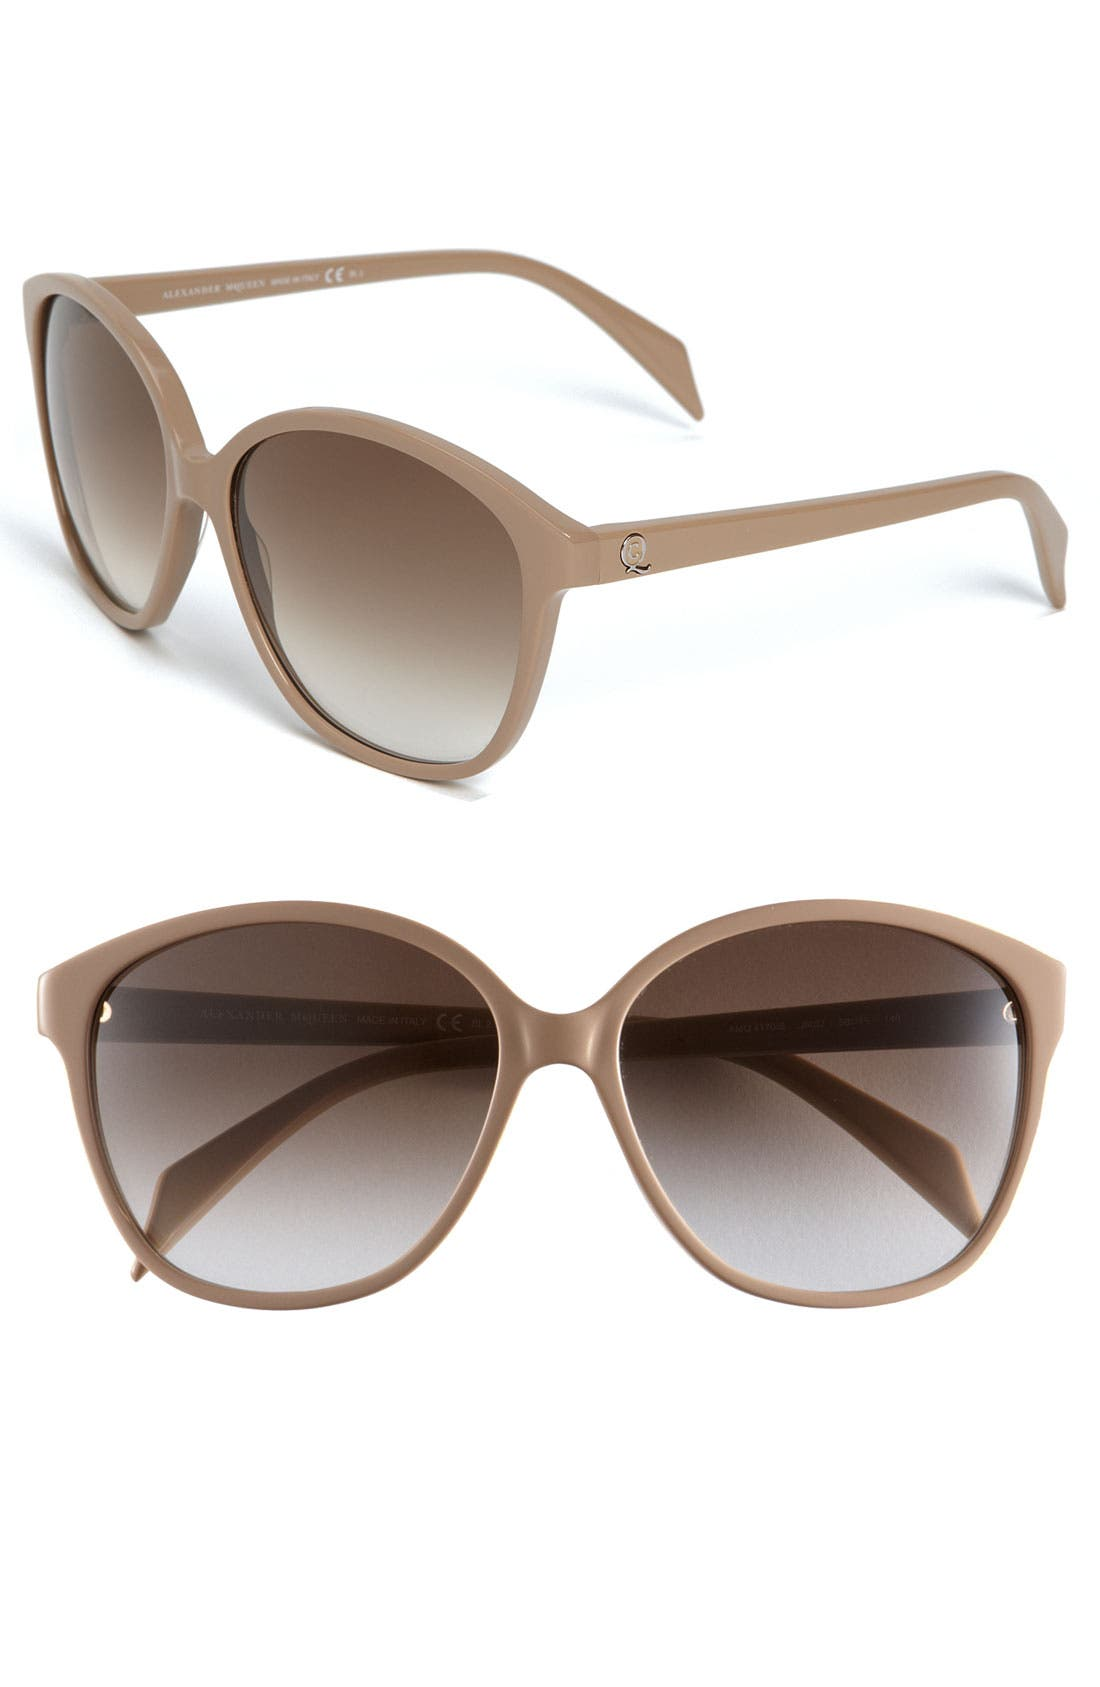 Alternate Image 1 Selected - Alexander McQueen Retro Inspired Sunglasses